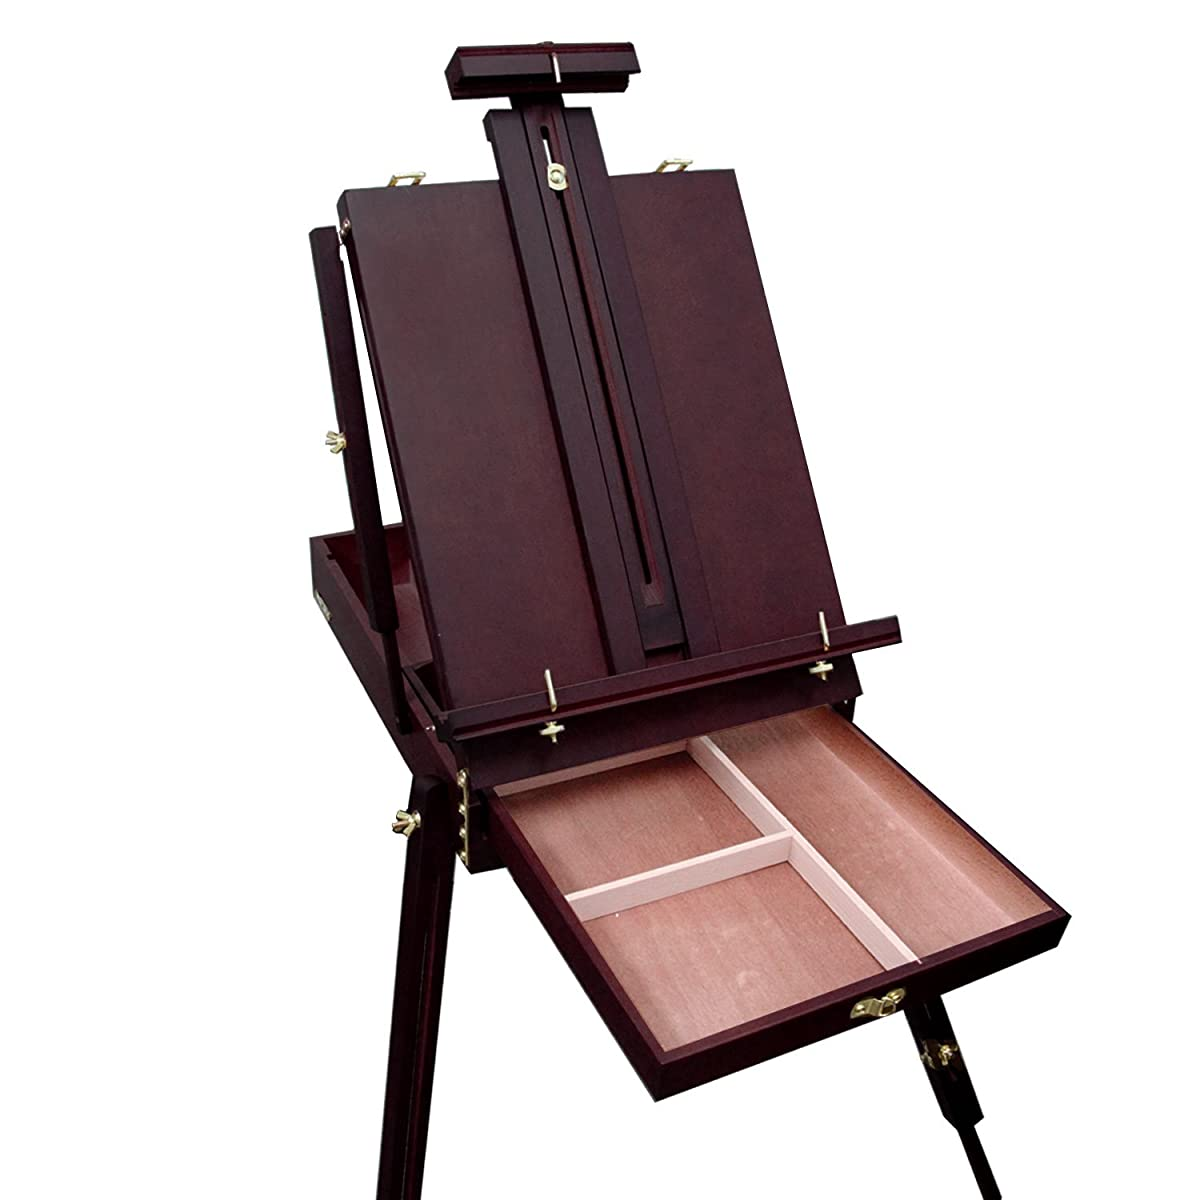 "US Art Supply Black Cherry Coronado French Style Easel & Sketchbox with 12"" Drawer, Wooden Pallete & Shoulder Strap"